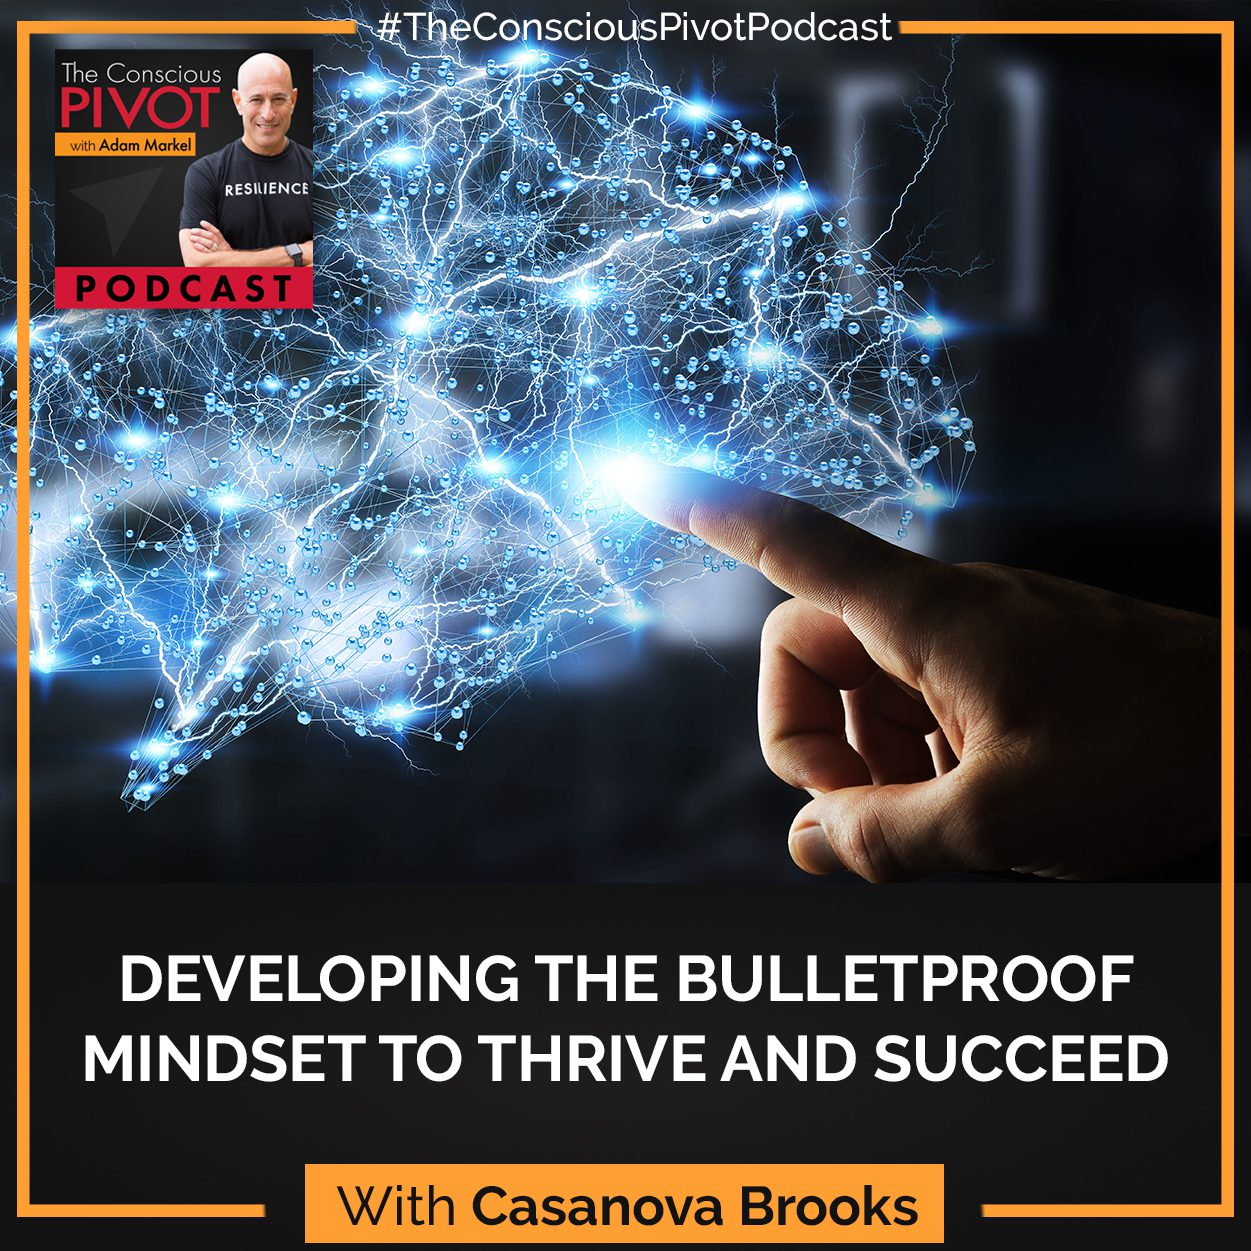 Developing The Bulletproof Mindset To Thrive And Succeed With Casanova Brooks